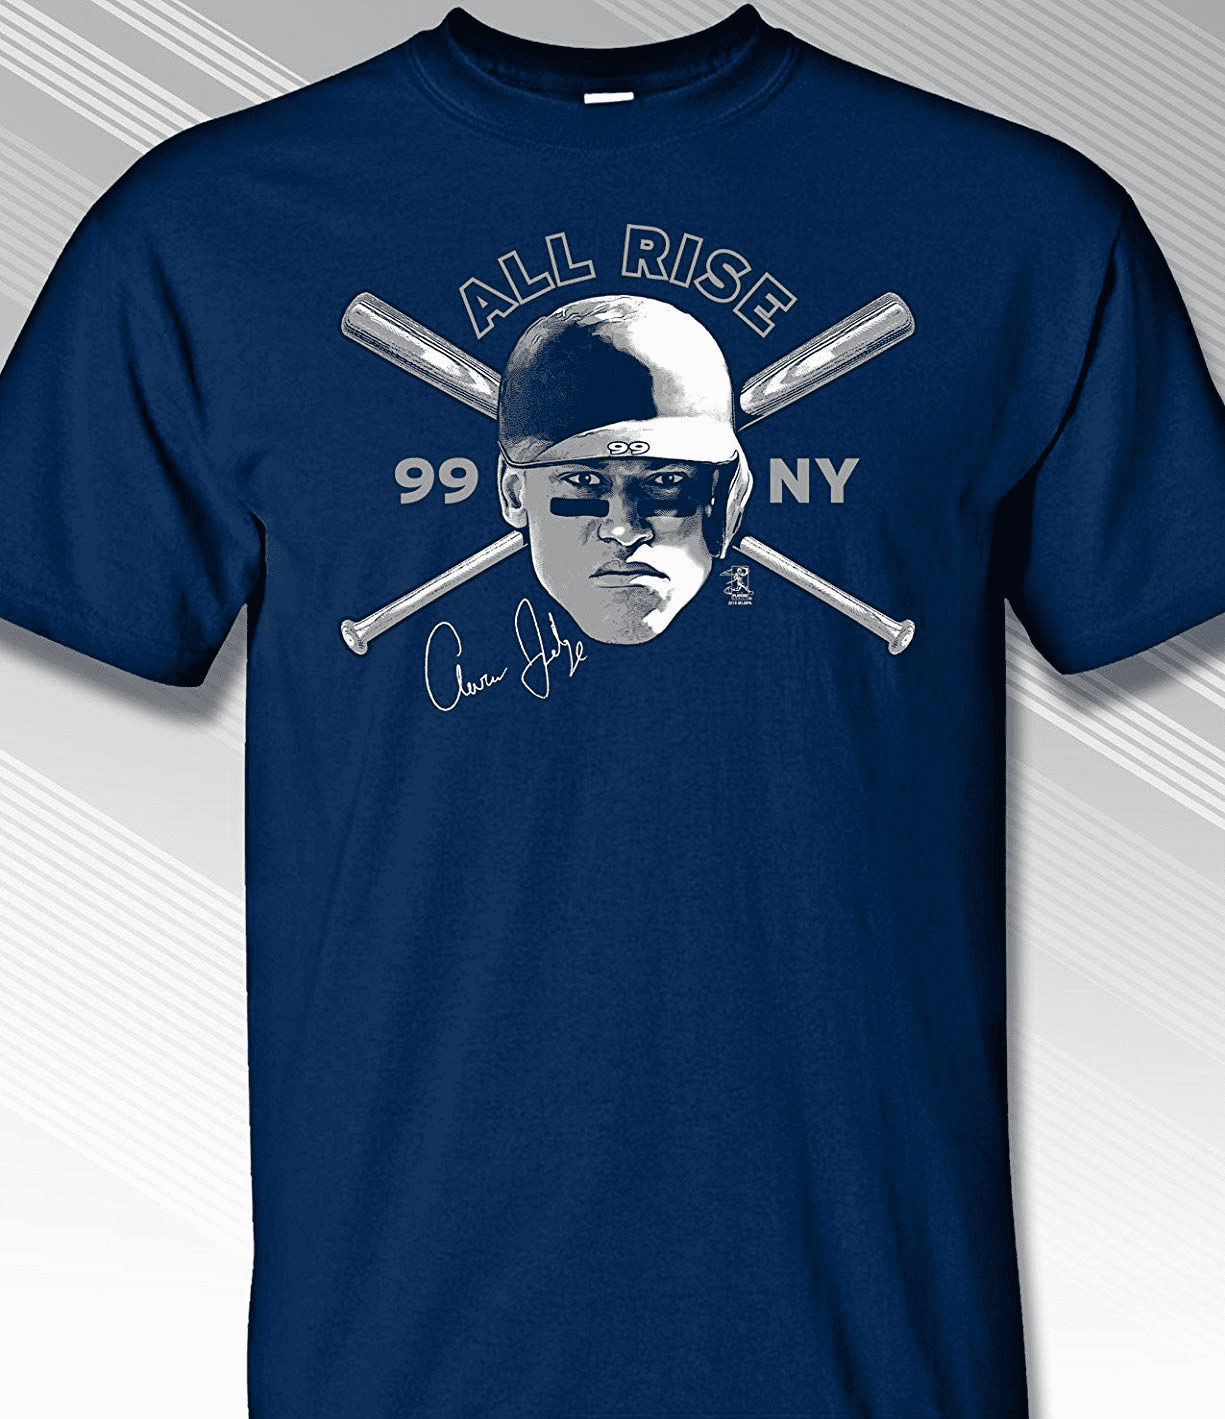 Aaron Judge New York Crossed Bats T-Shirt<br>Short or Long Sleeve<br>Youth Med to Adult 4X